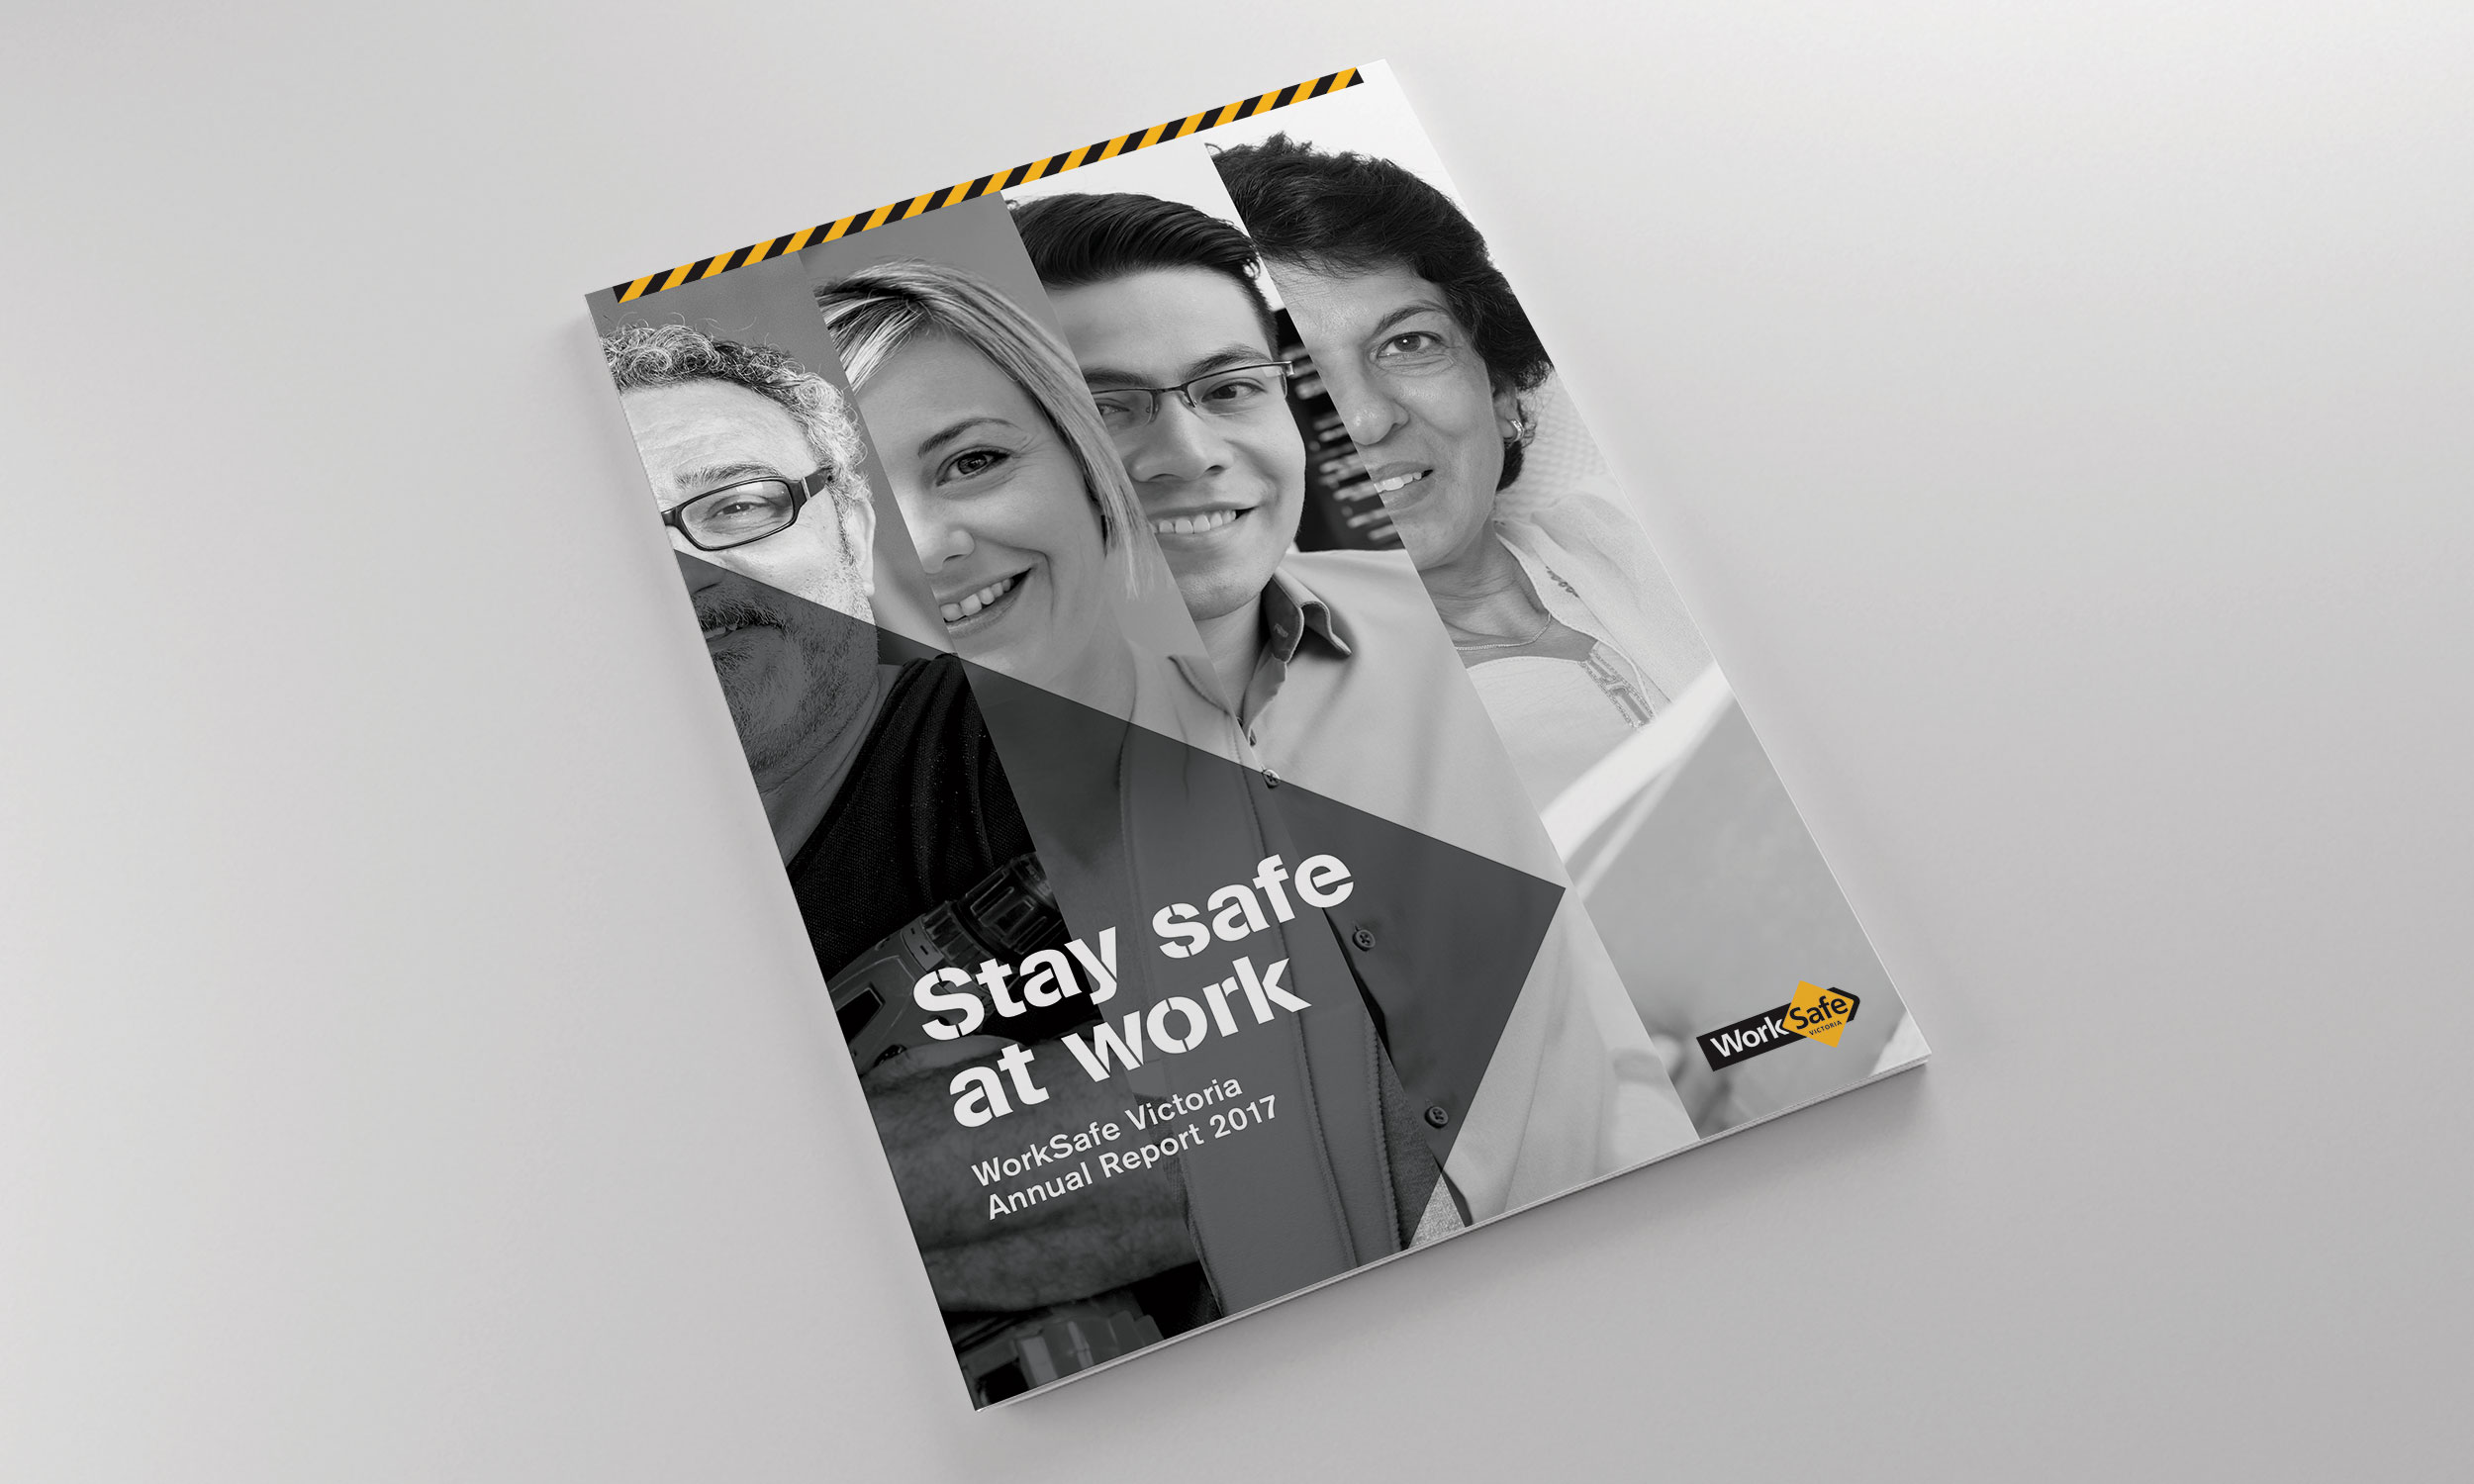 Stay safe at work  WorkSafe 2017 Annual Report.  view case study